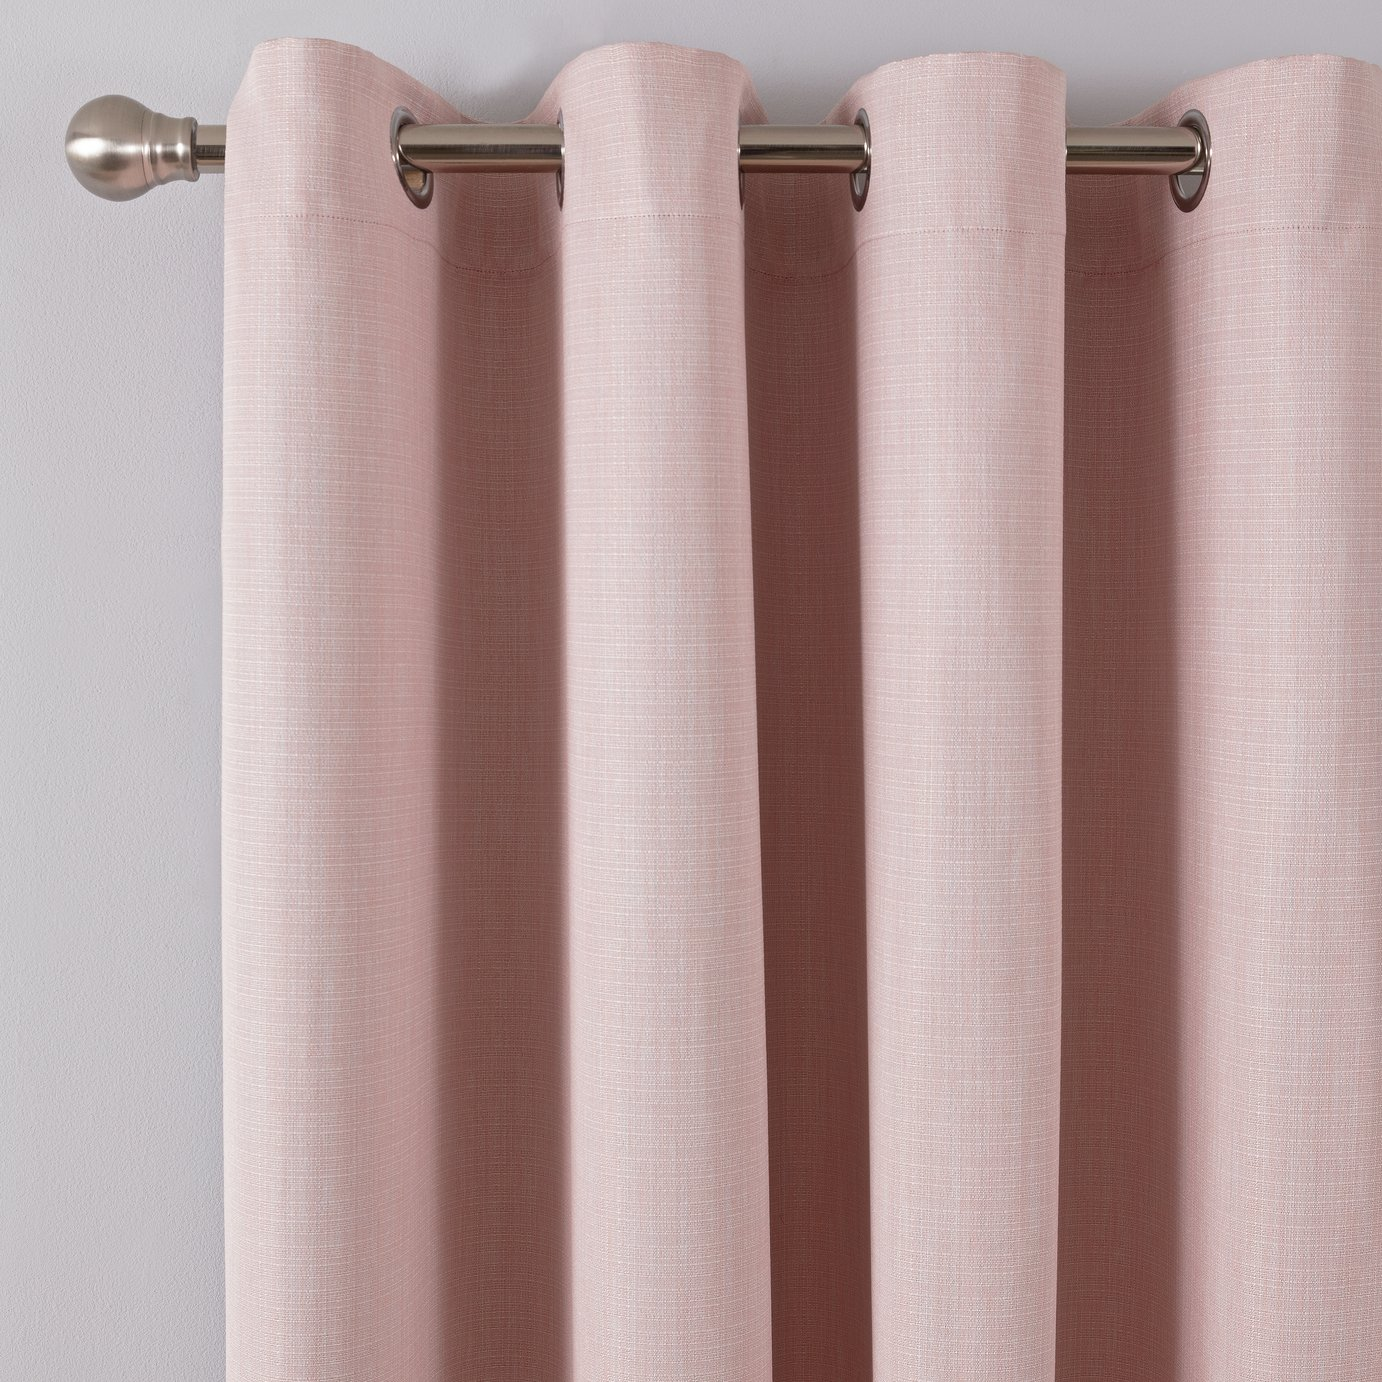 Argos Home Linen Look Eyelet Curtains - Blush